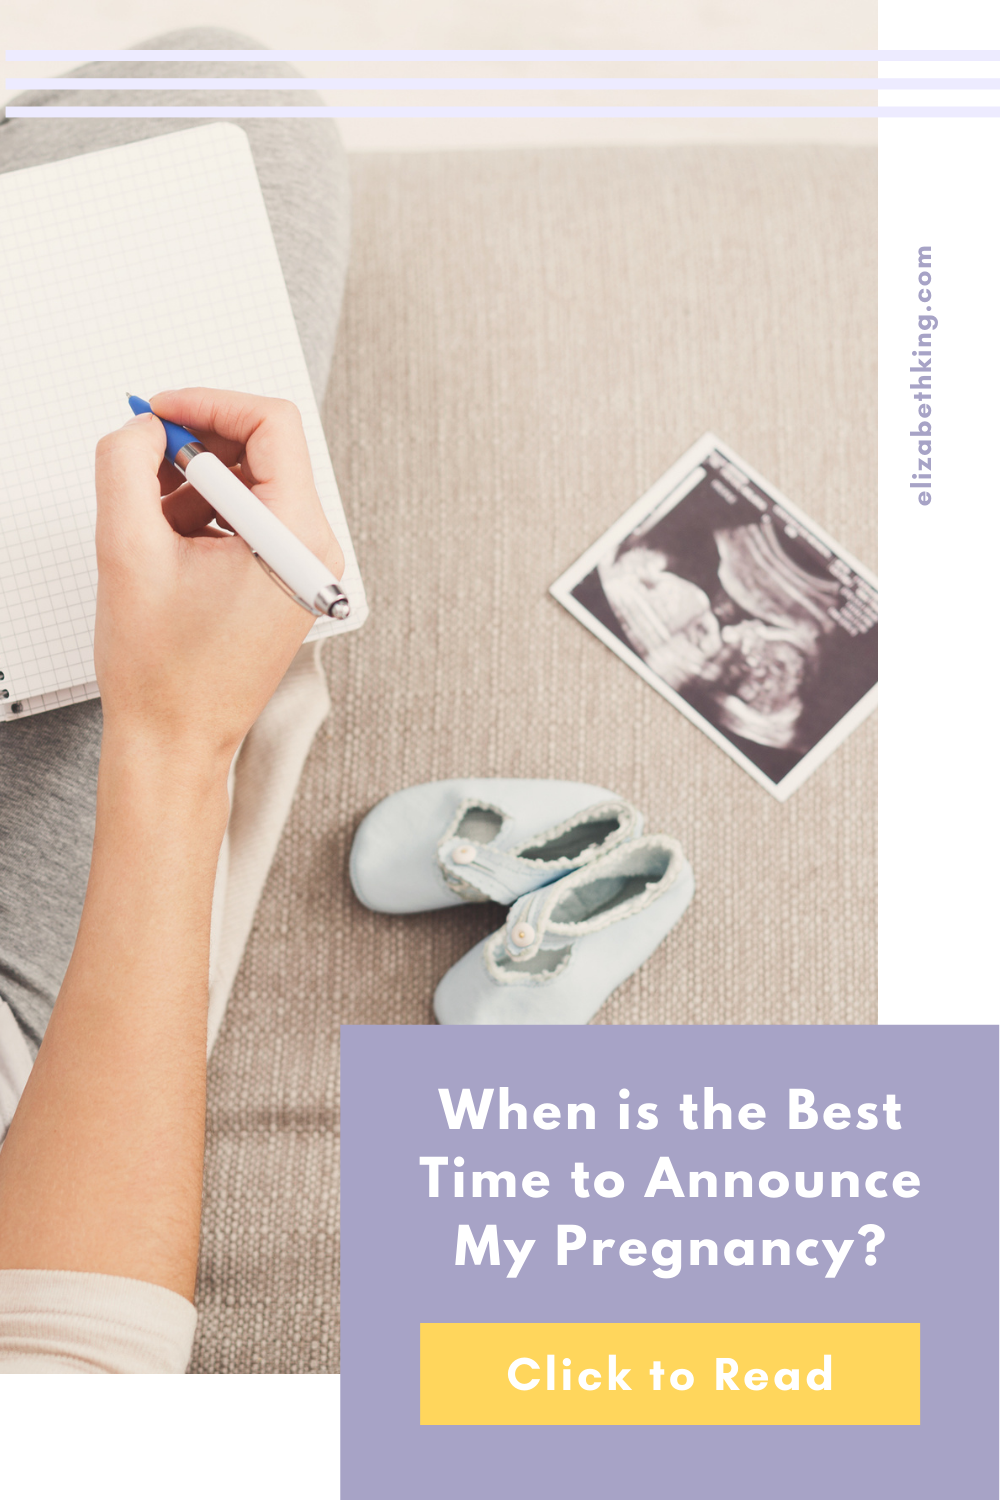 When is the Best Time to Announce My Pregnancy? | ElizabethKing.com